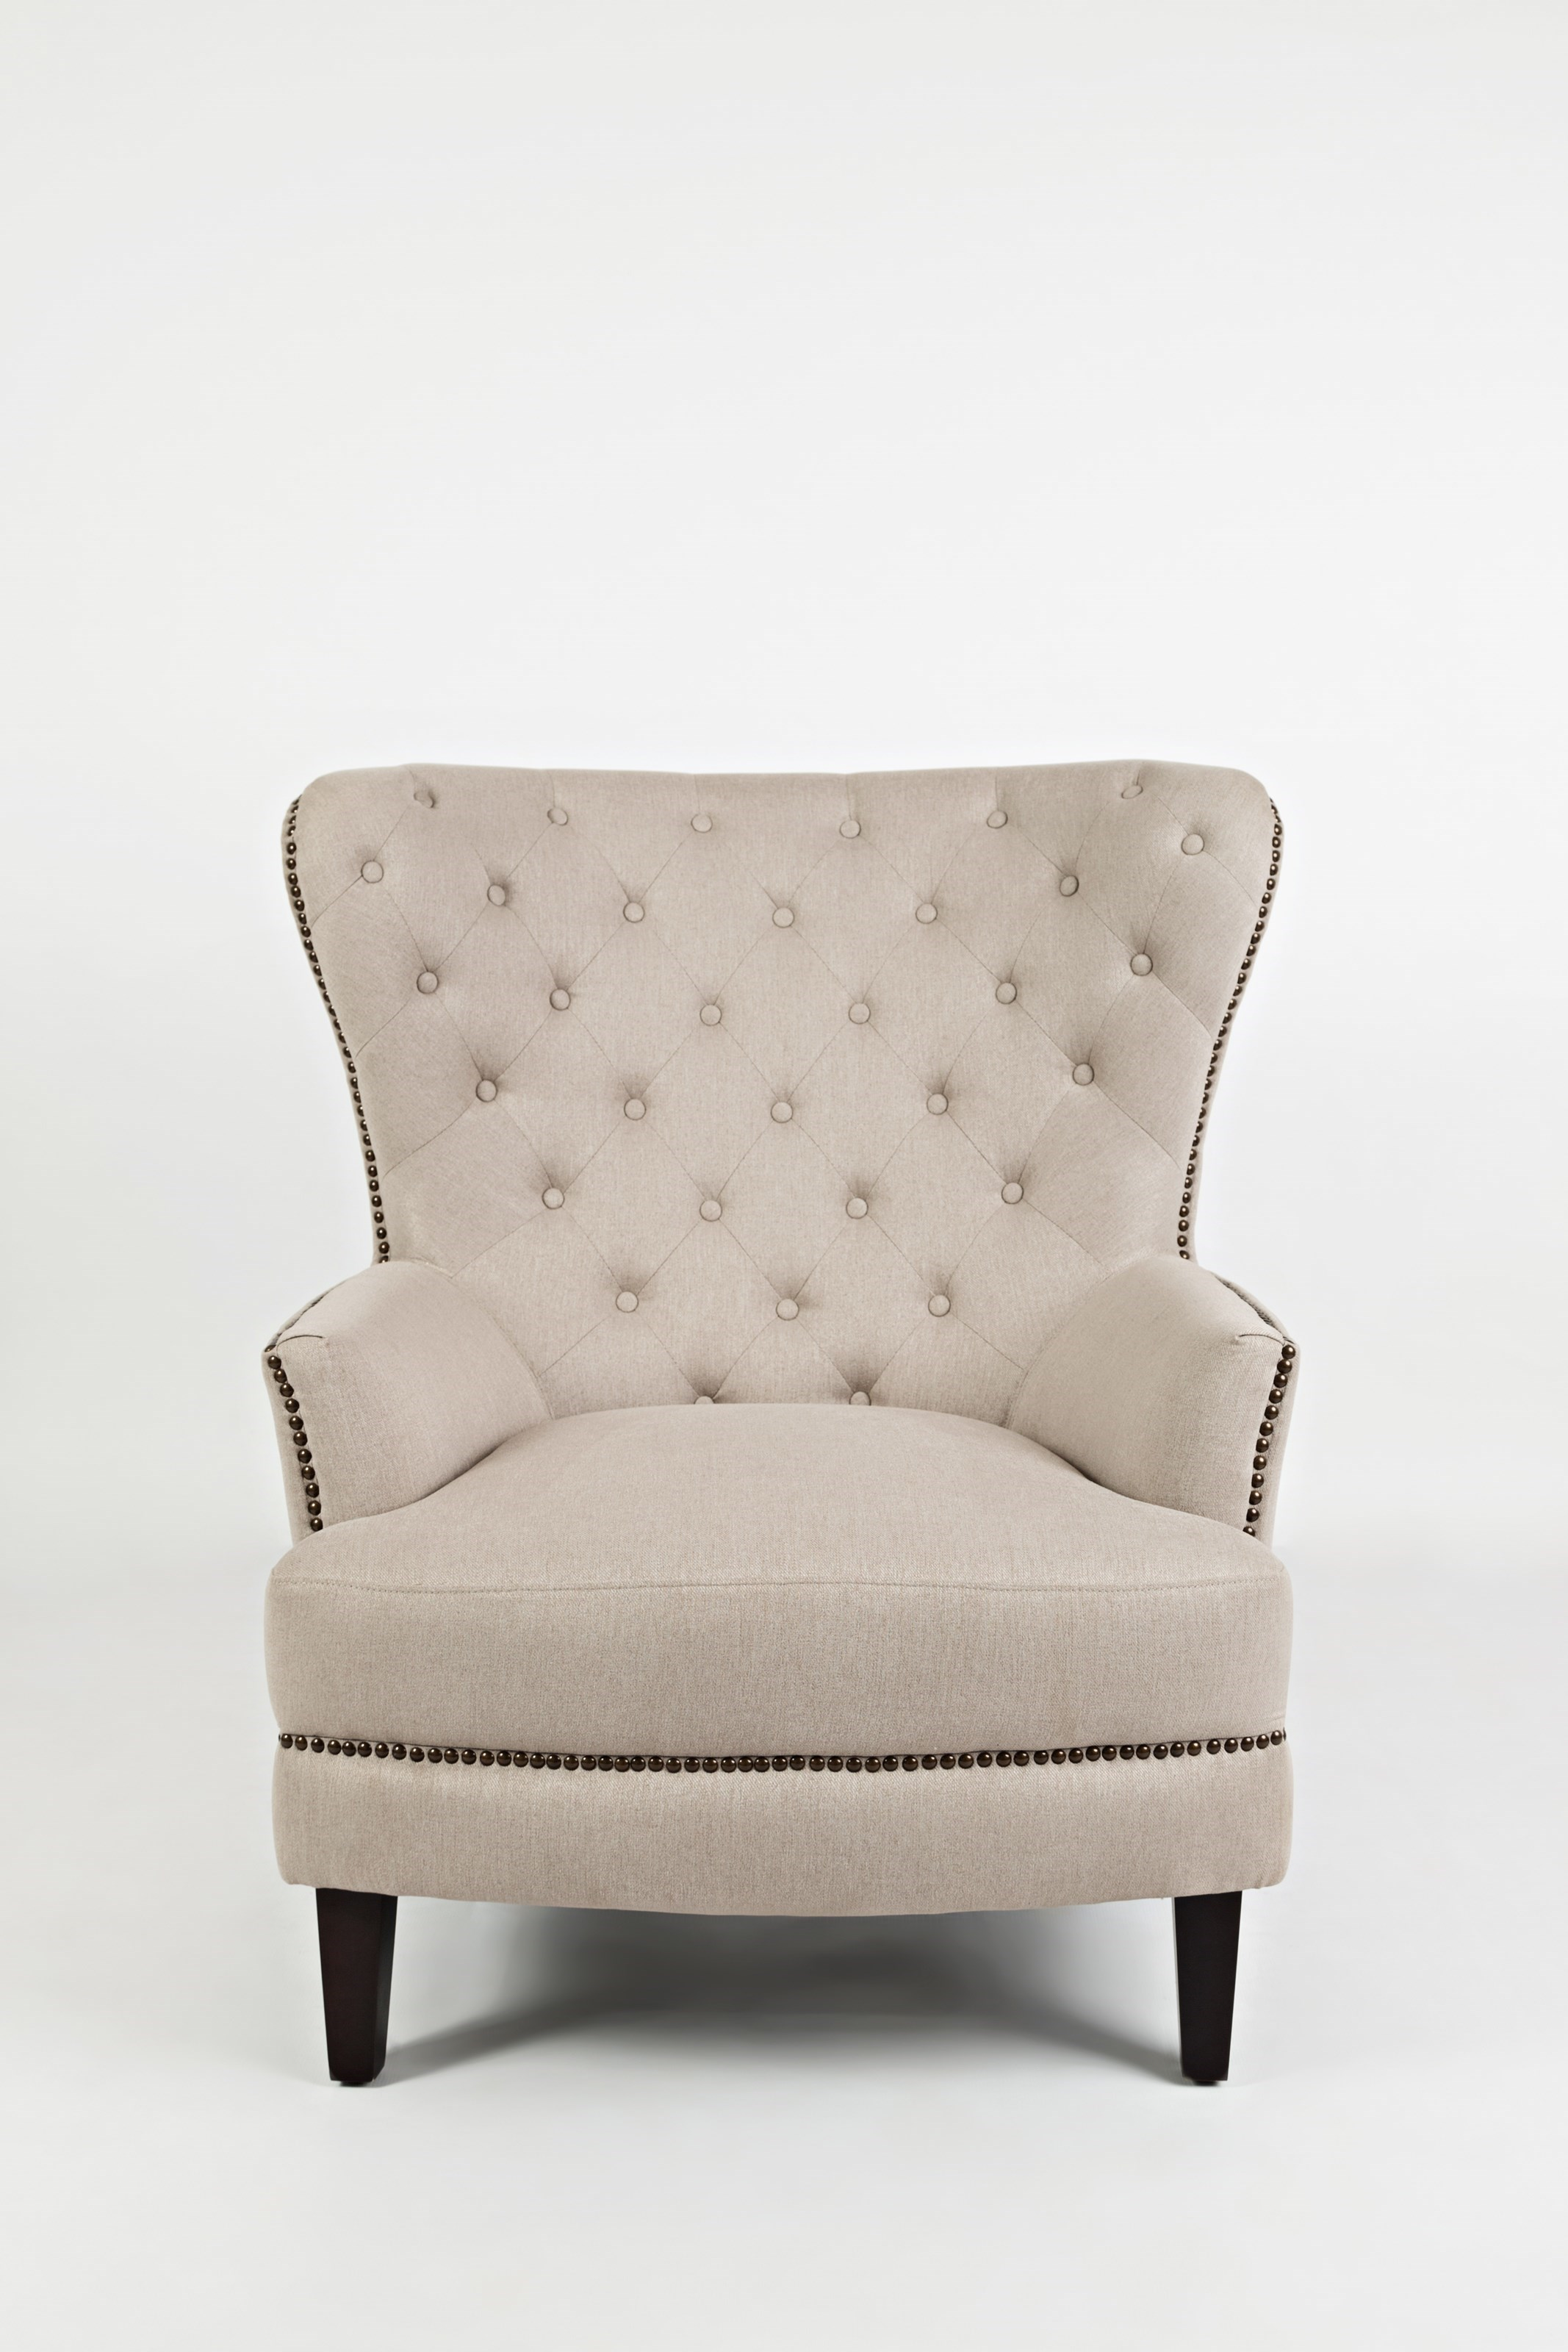 Merveilleux Jofran Easy Living Conner Chair With Tufted Wing Back